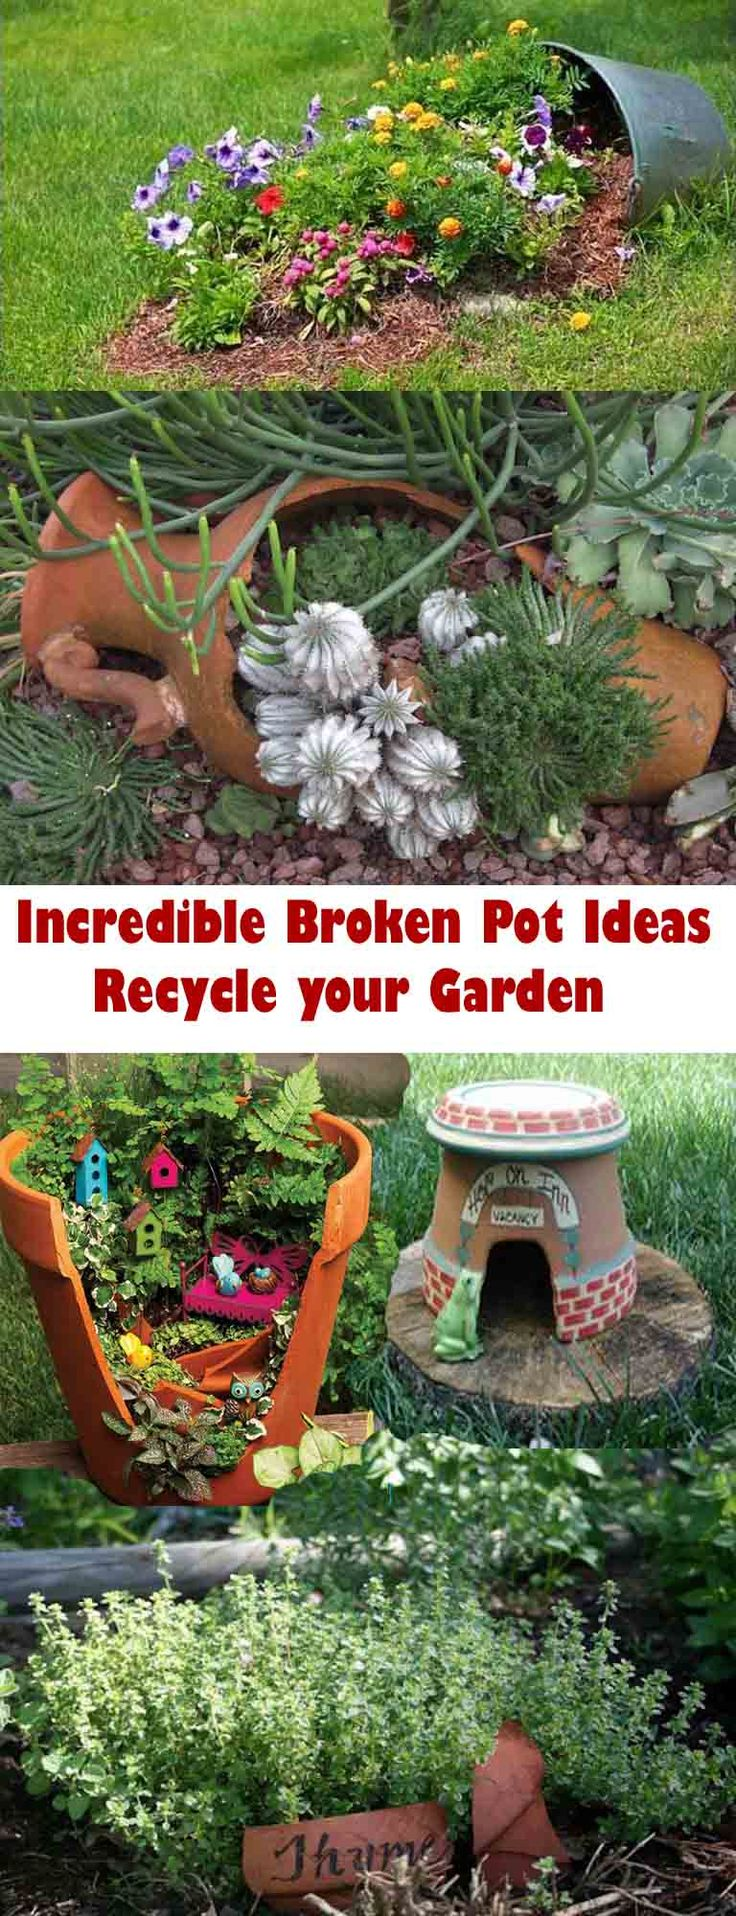 Have broken pots? Don't throw them away, check out these cool ideas to recycle them: Garden Ideas, Flower Pot Craft, Gardening Ideas, Broken Flower Pot Ideas, Outdoor Flower Pot Ideas, Flower Pots Ideas, Cool Ideas, Broken Pot, Ideas For Flower Pots